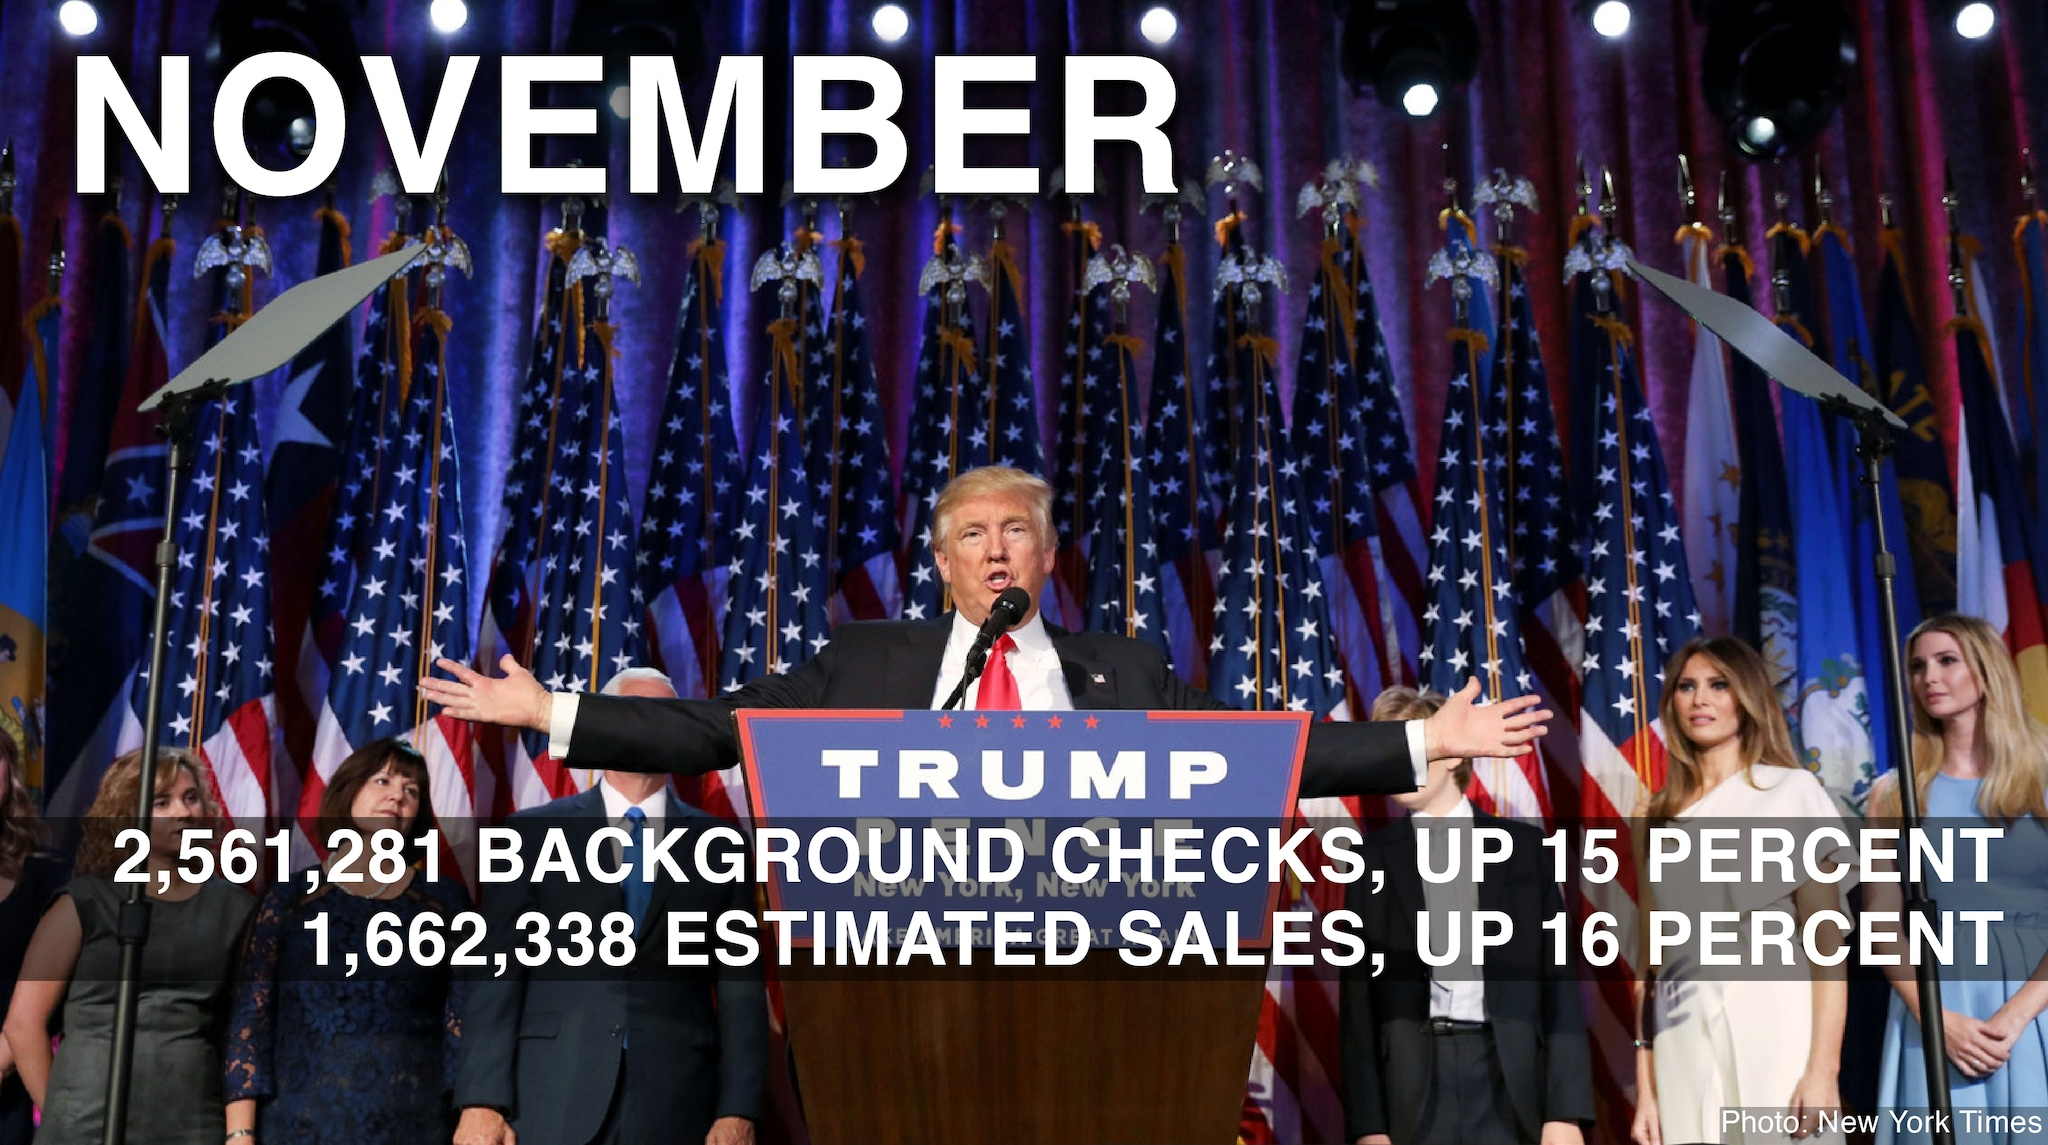 November 2016 background check stats